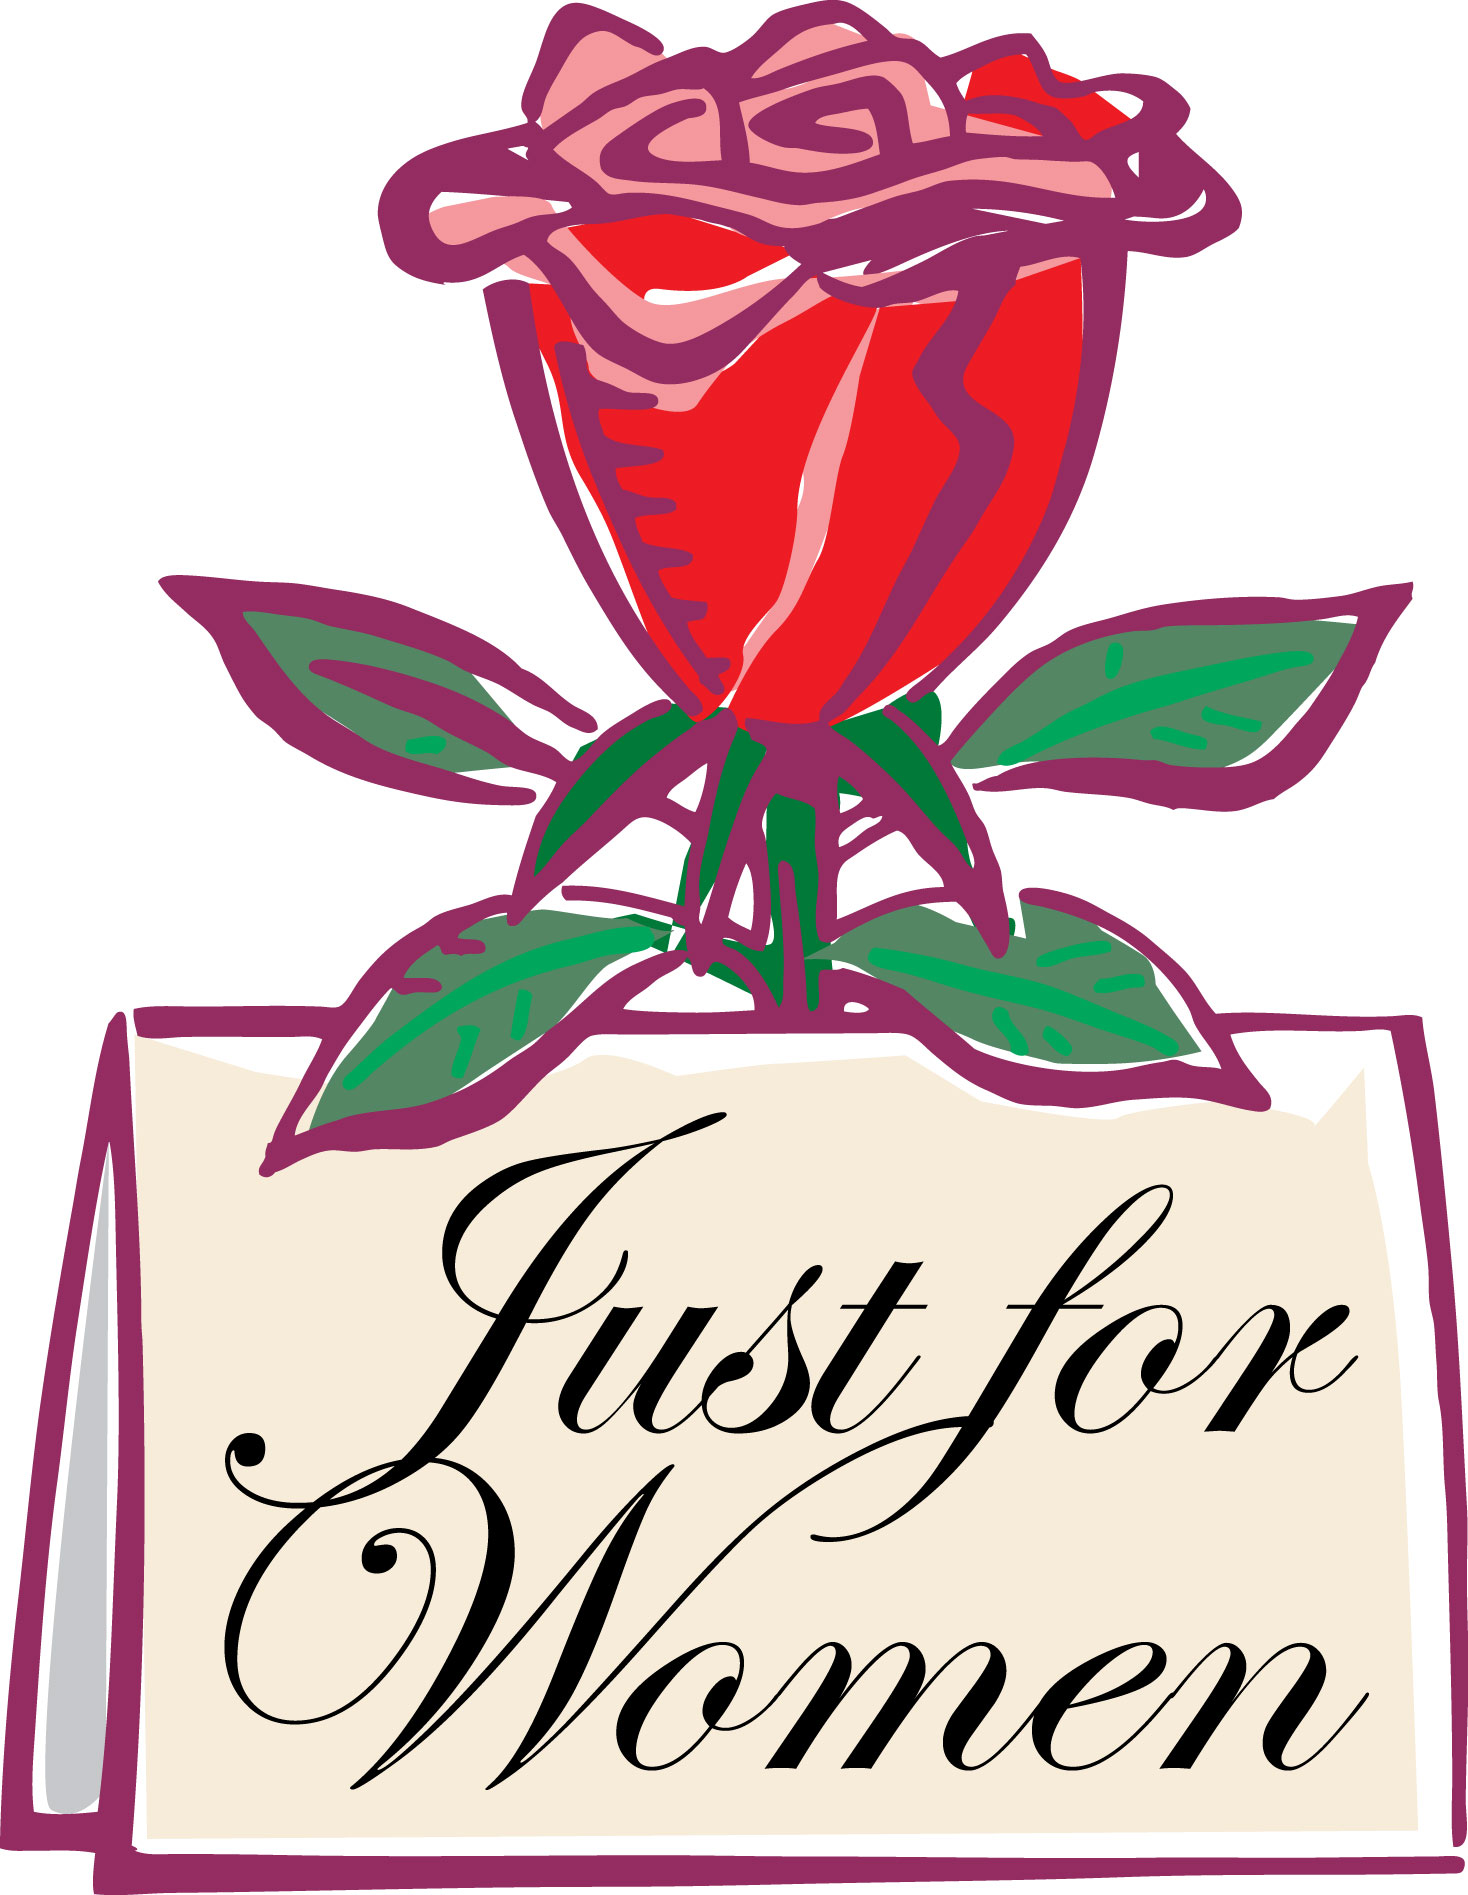 Meeting clipart women's ministry Cliparts Women's Art Zone Clipart